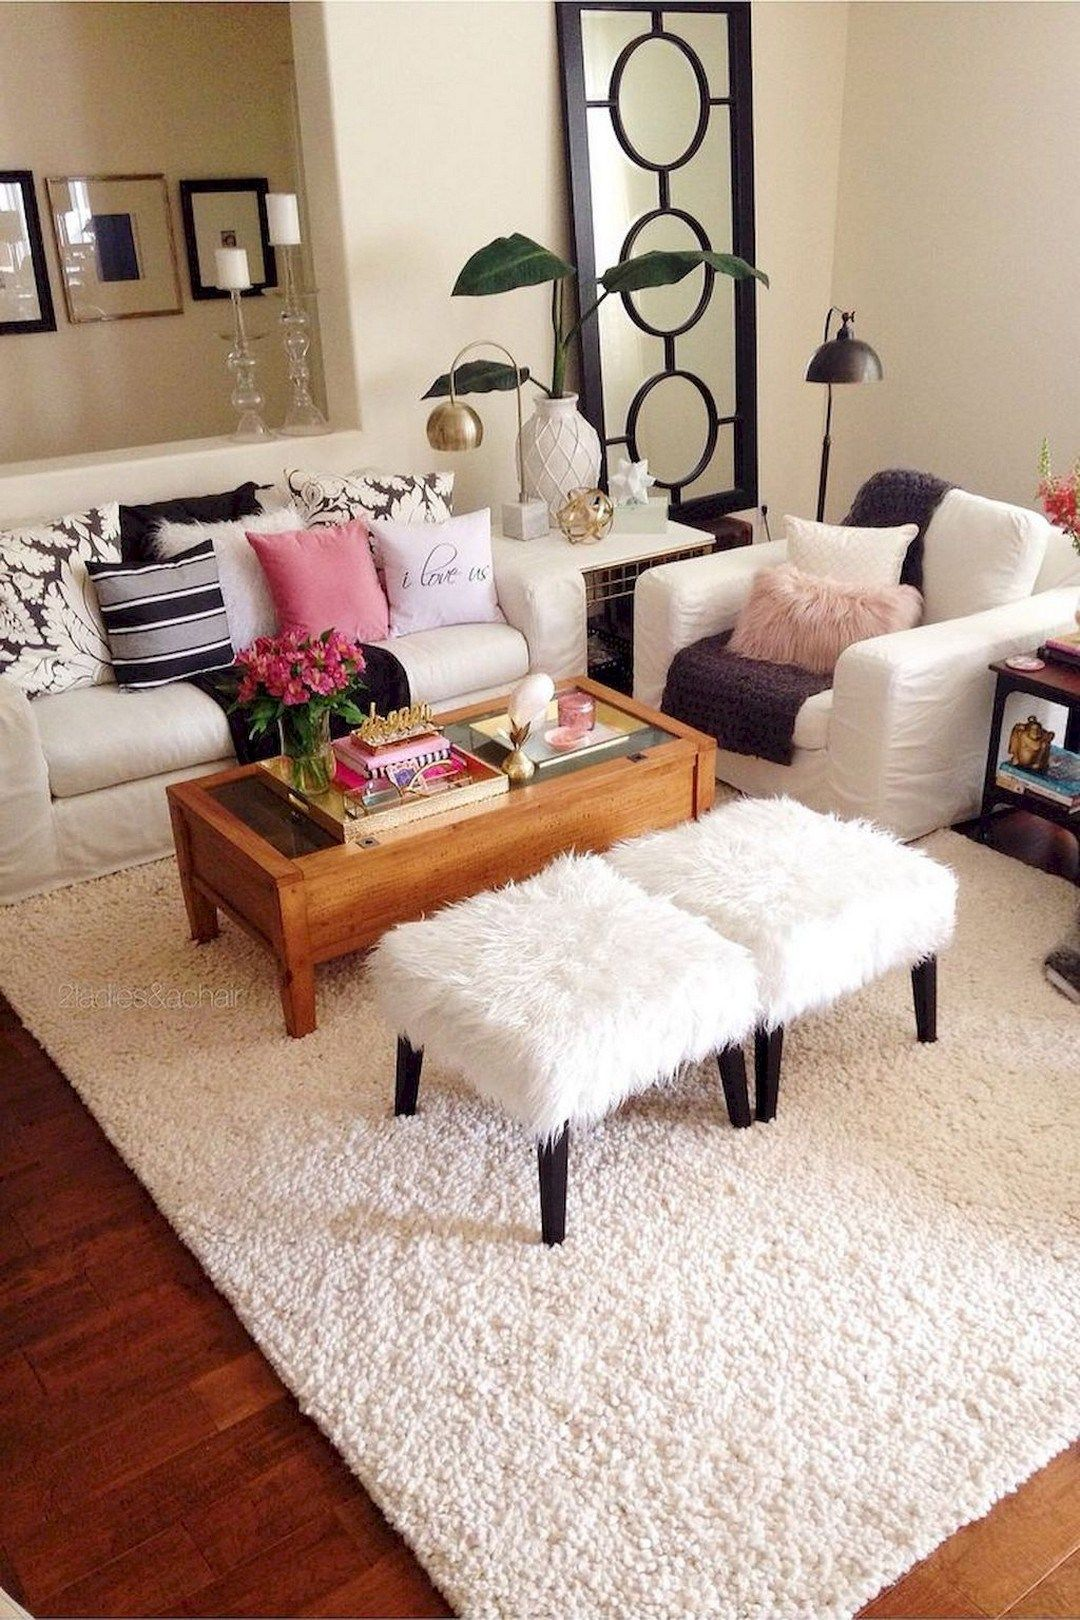 Cozy Small Apartment Decorating Ideas On A Budget Decomagz College Apartment Decor Apartment Decorating Rental Apartment Decorating Rental Budget